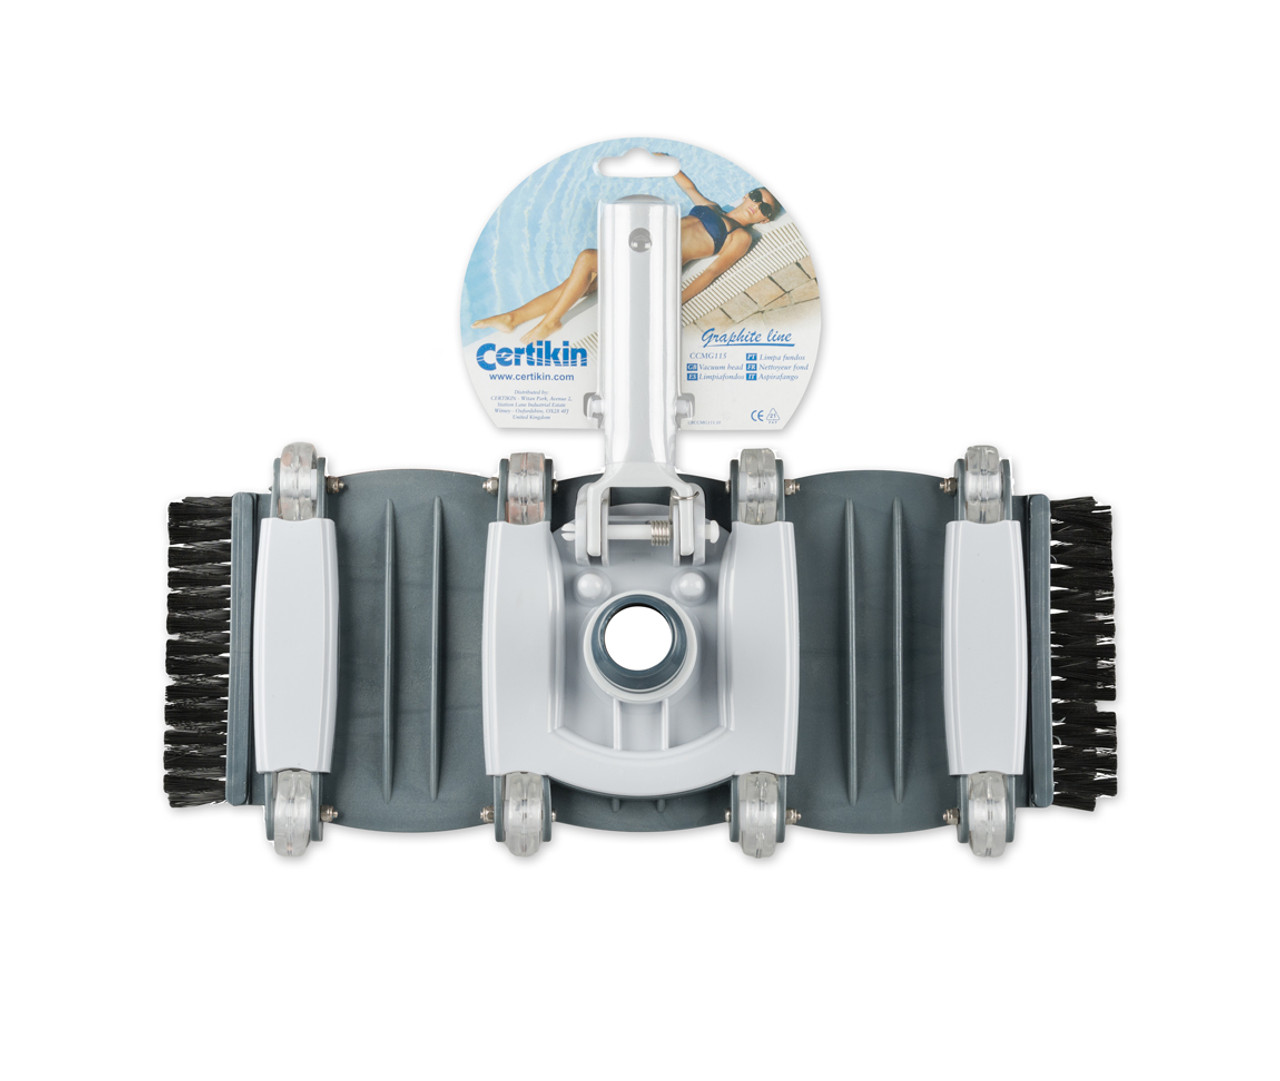 Certikin vac head for concrete and tiled pools